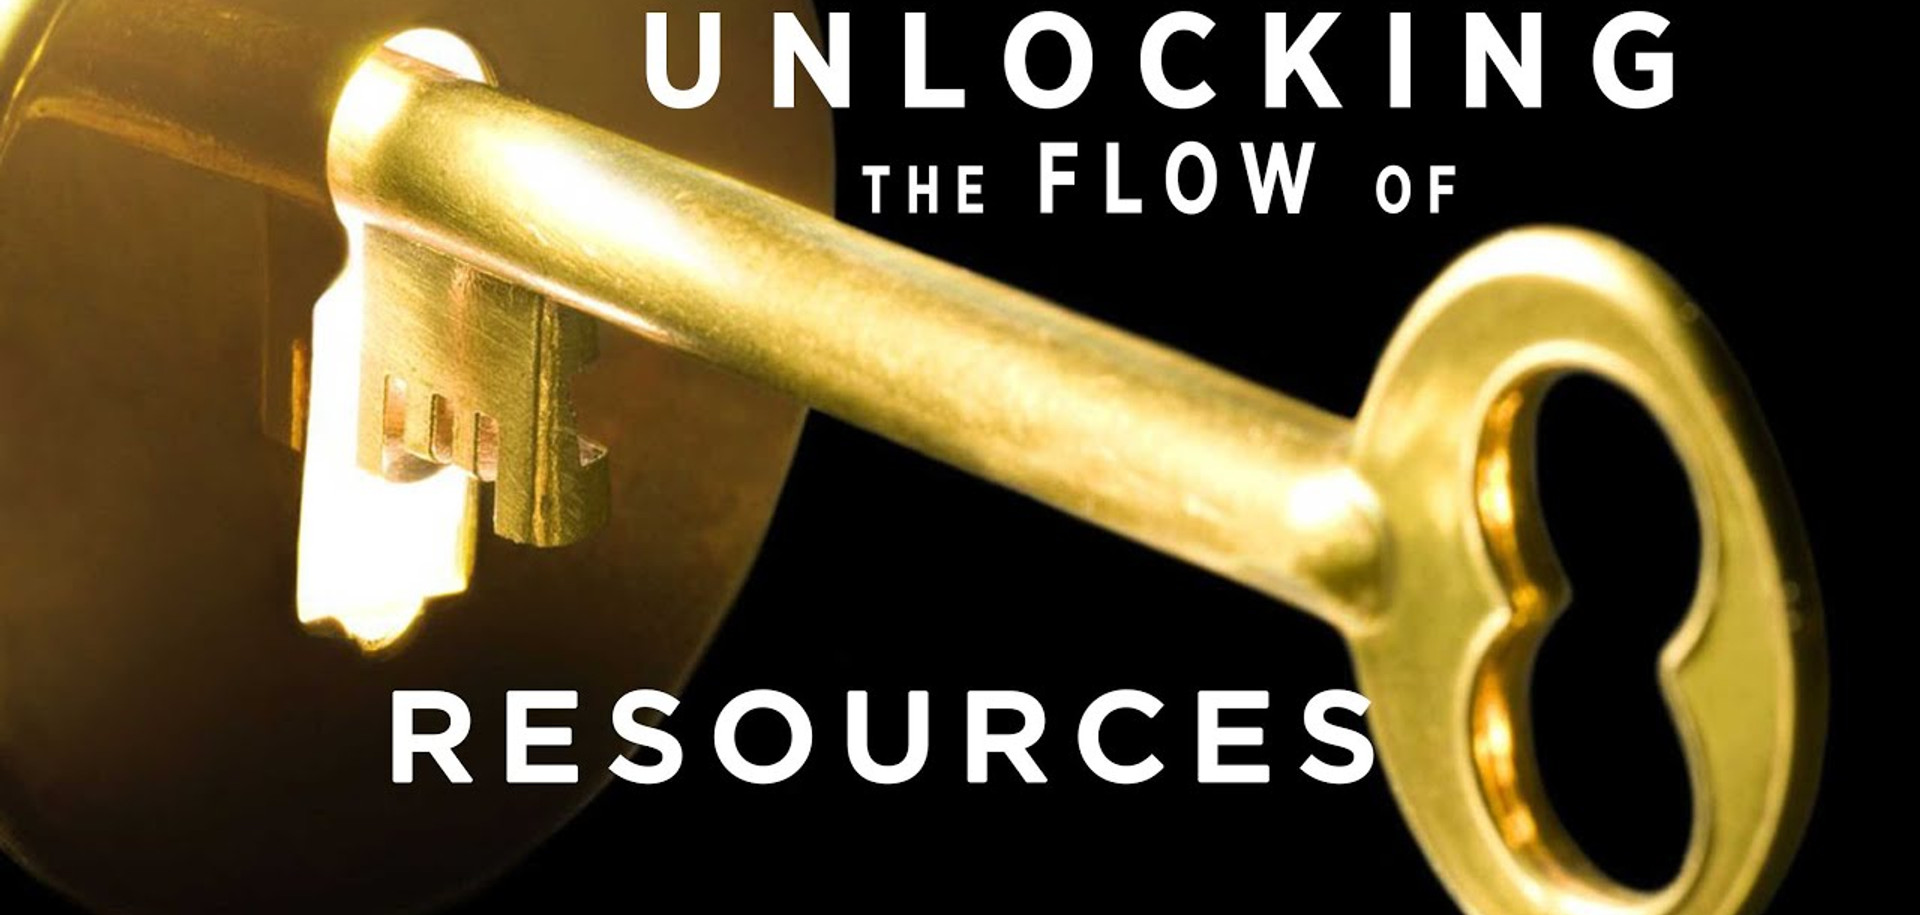 Unlocking the Flow of Resources